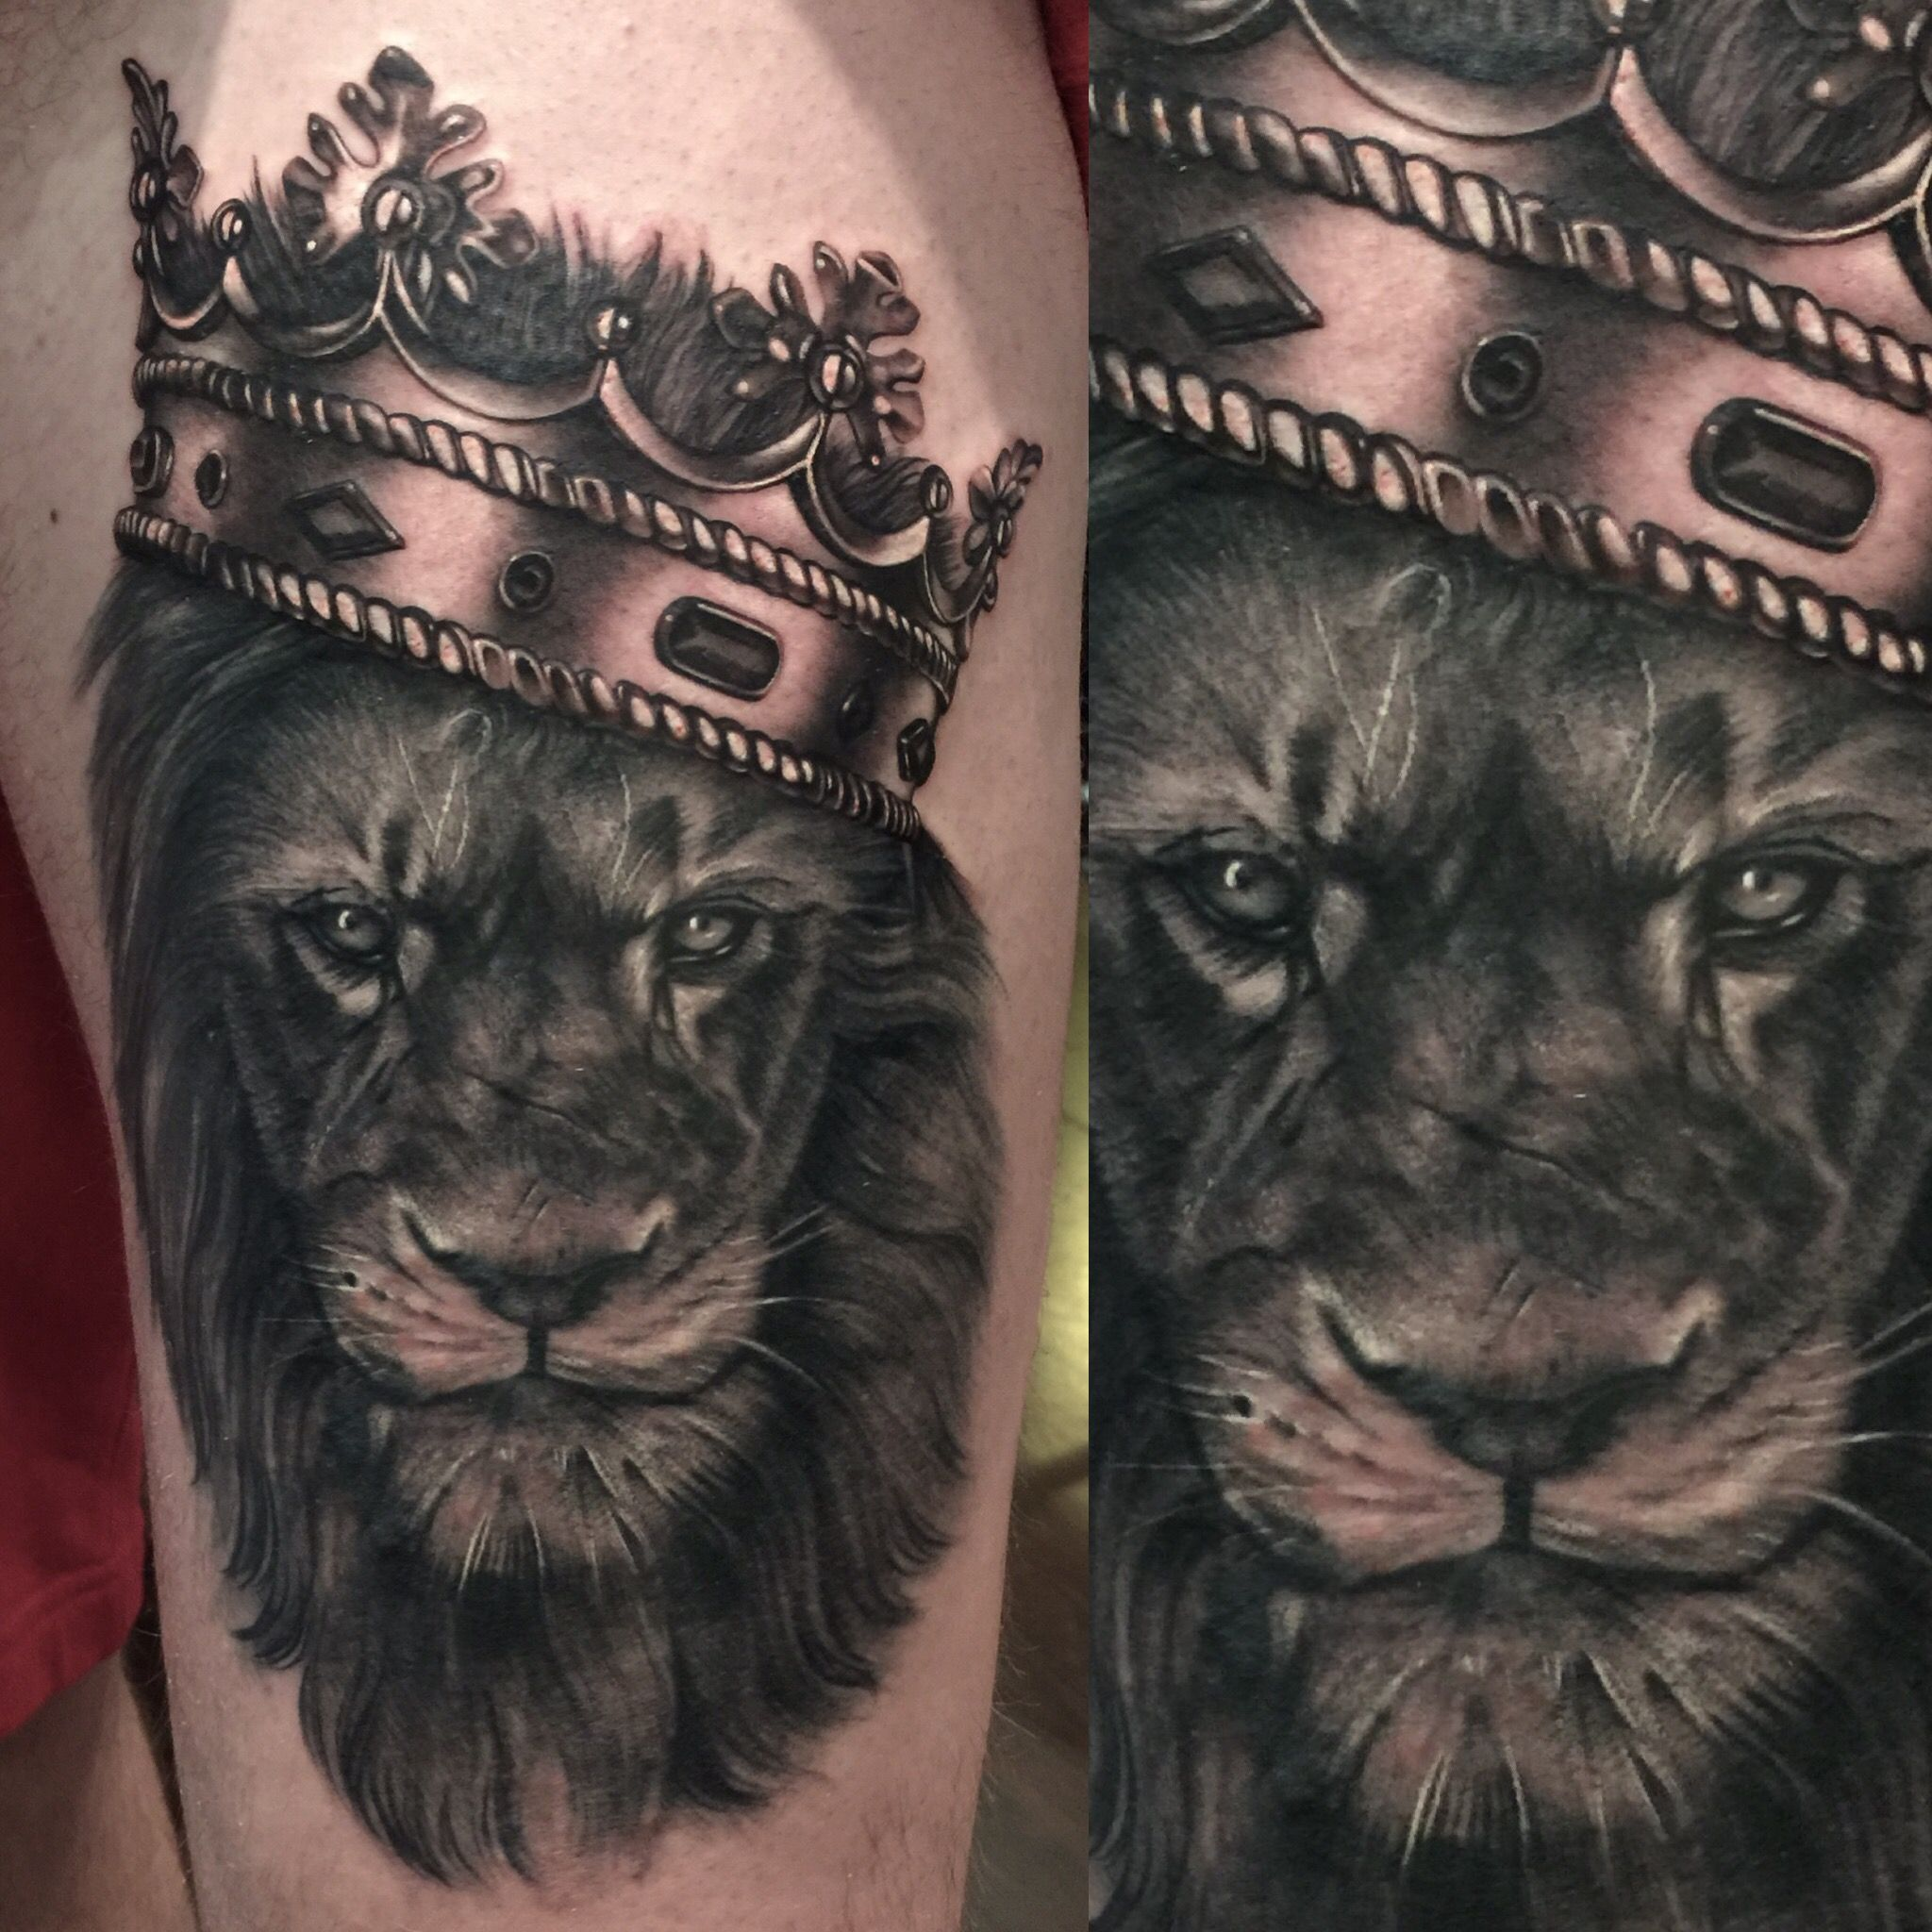 c4a7fe5aa Lion and crown tattoo | Tattoos | Crown tattoo design, Lion tattoo ...